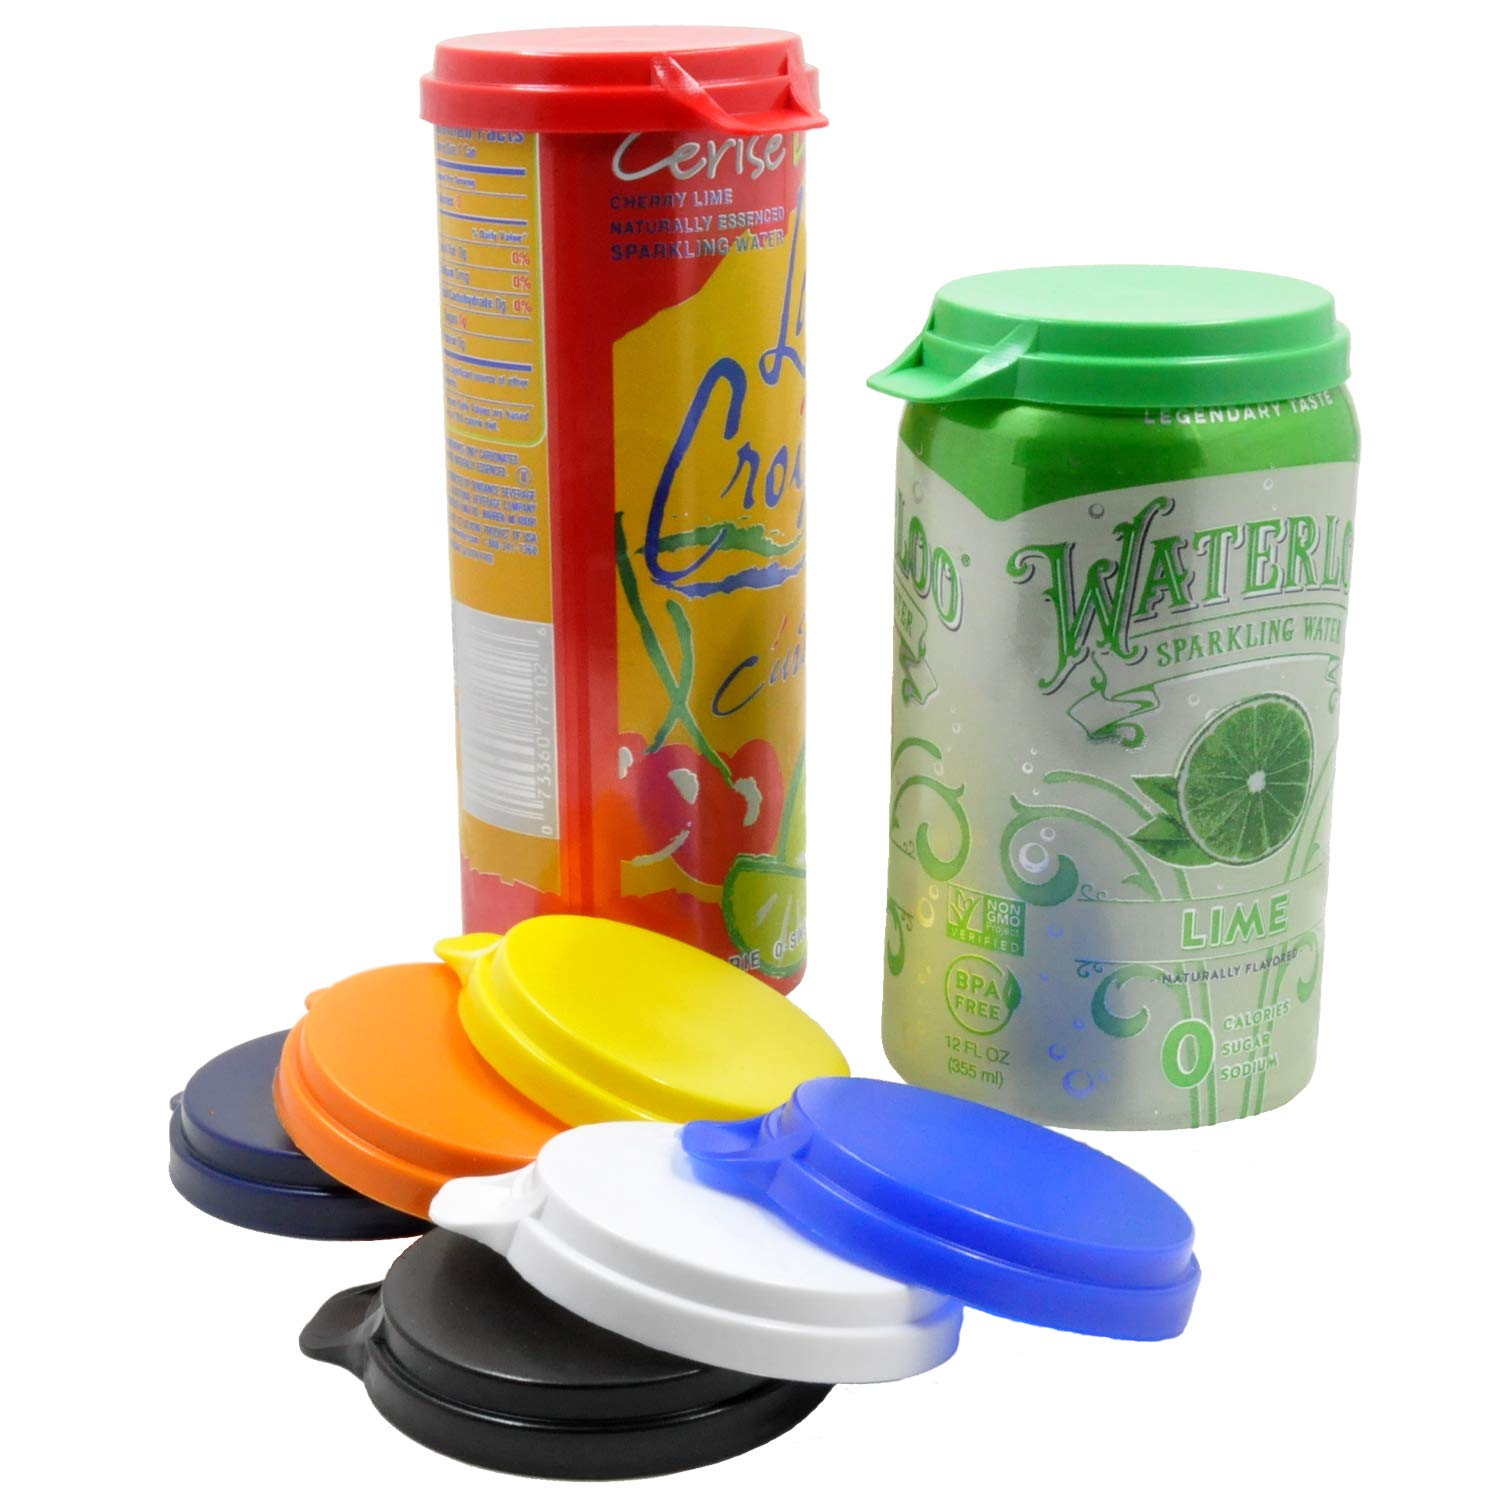 Soda Pop & Beverage Can Covers - Made in USA - Sold by Vets - Prevents Spills - Retains Fizz - BPA-Free by OHSAY USA